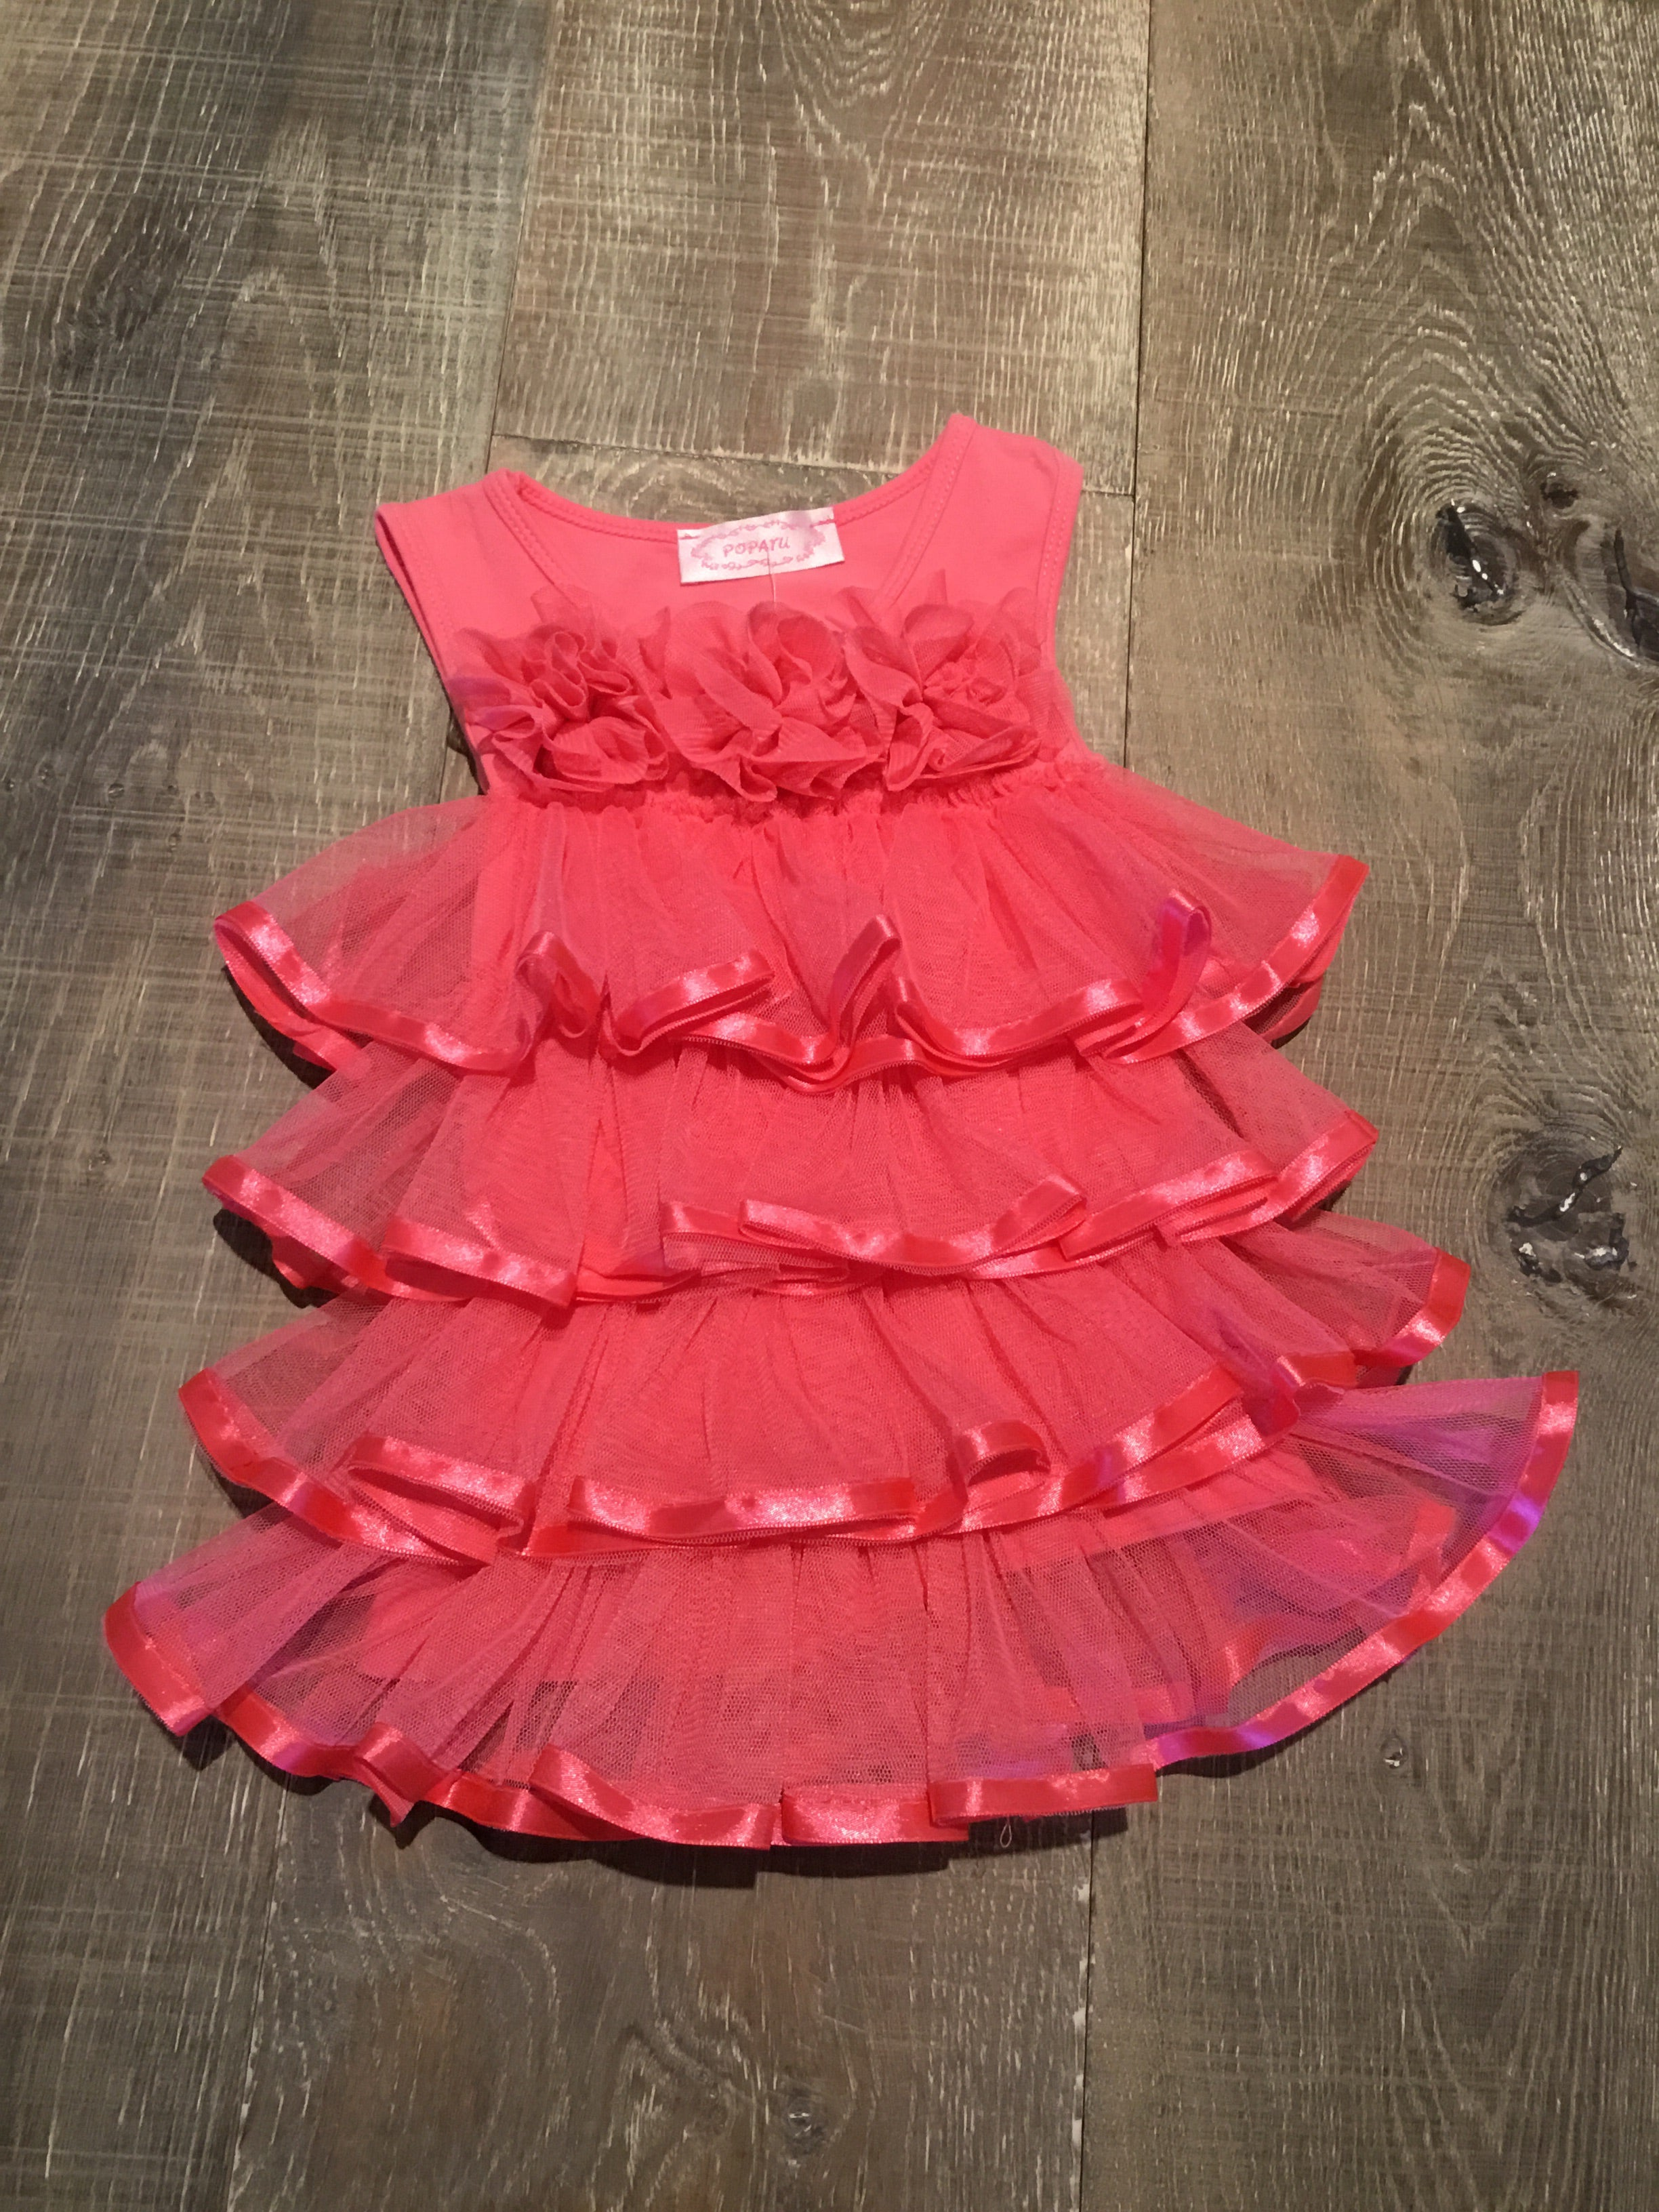 Coral/Pink Ruffled Tulle Ribbon Dress